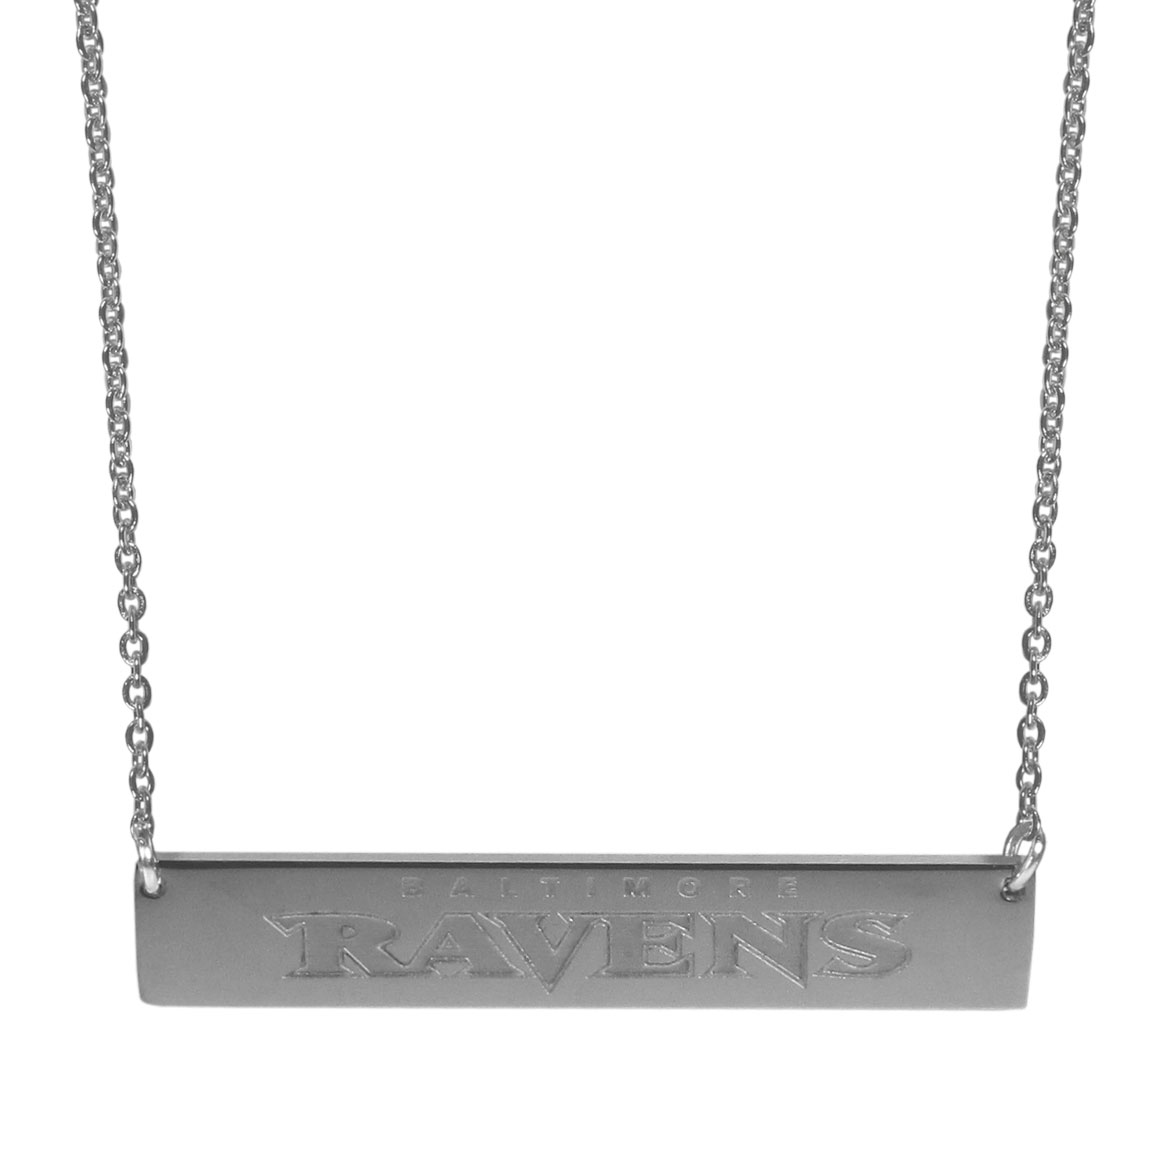 Baltimore Ravens Bar Necklace - Simply beautiful Baltimore Ravens bar necklace on a 20 inch link chain with 2 inch adjustable extender. This light-weight bar necklace has a stylish silver colored finish with the team name expertly etched on the 1.5 inch bar. Every female  fan will enjoy this contempory fashion accessory.